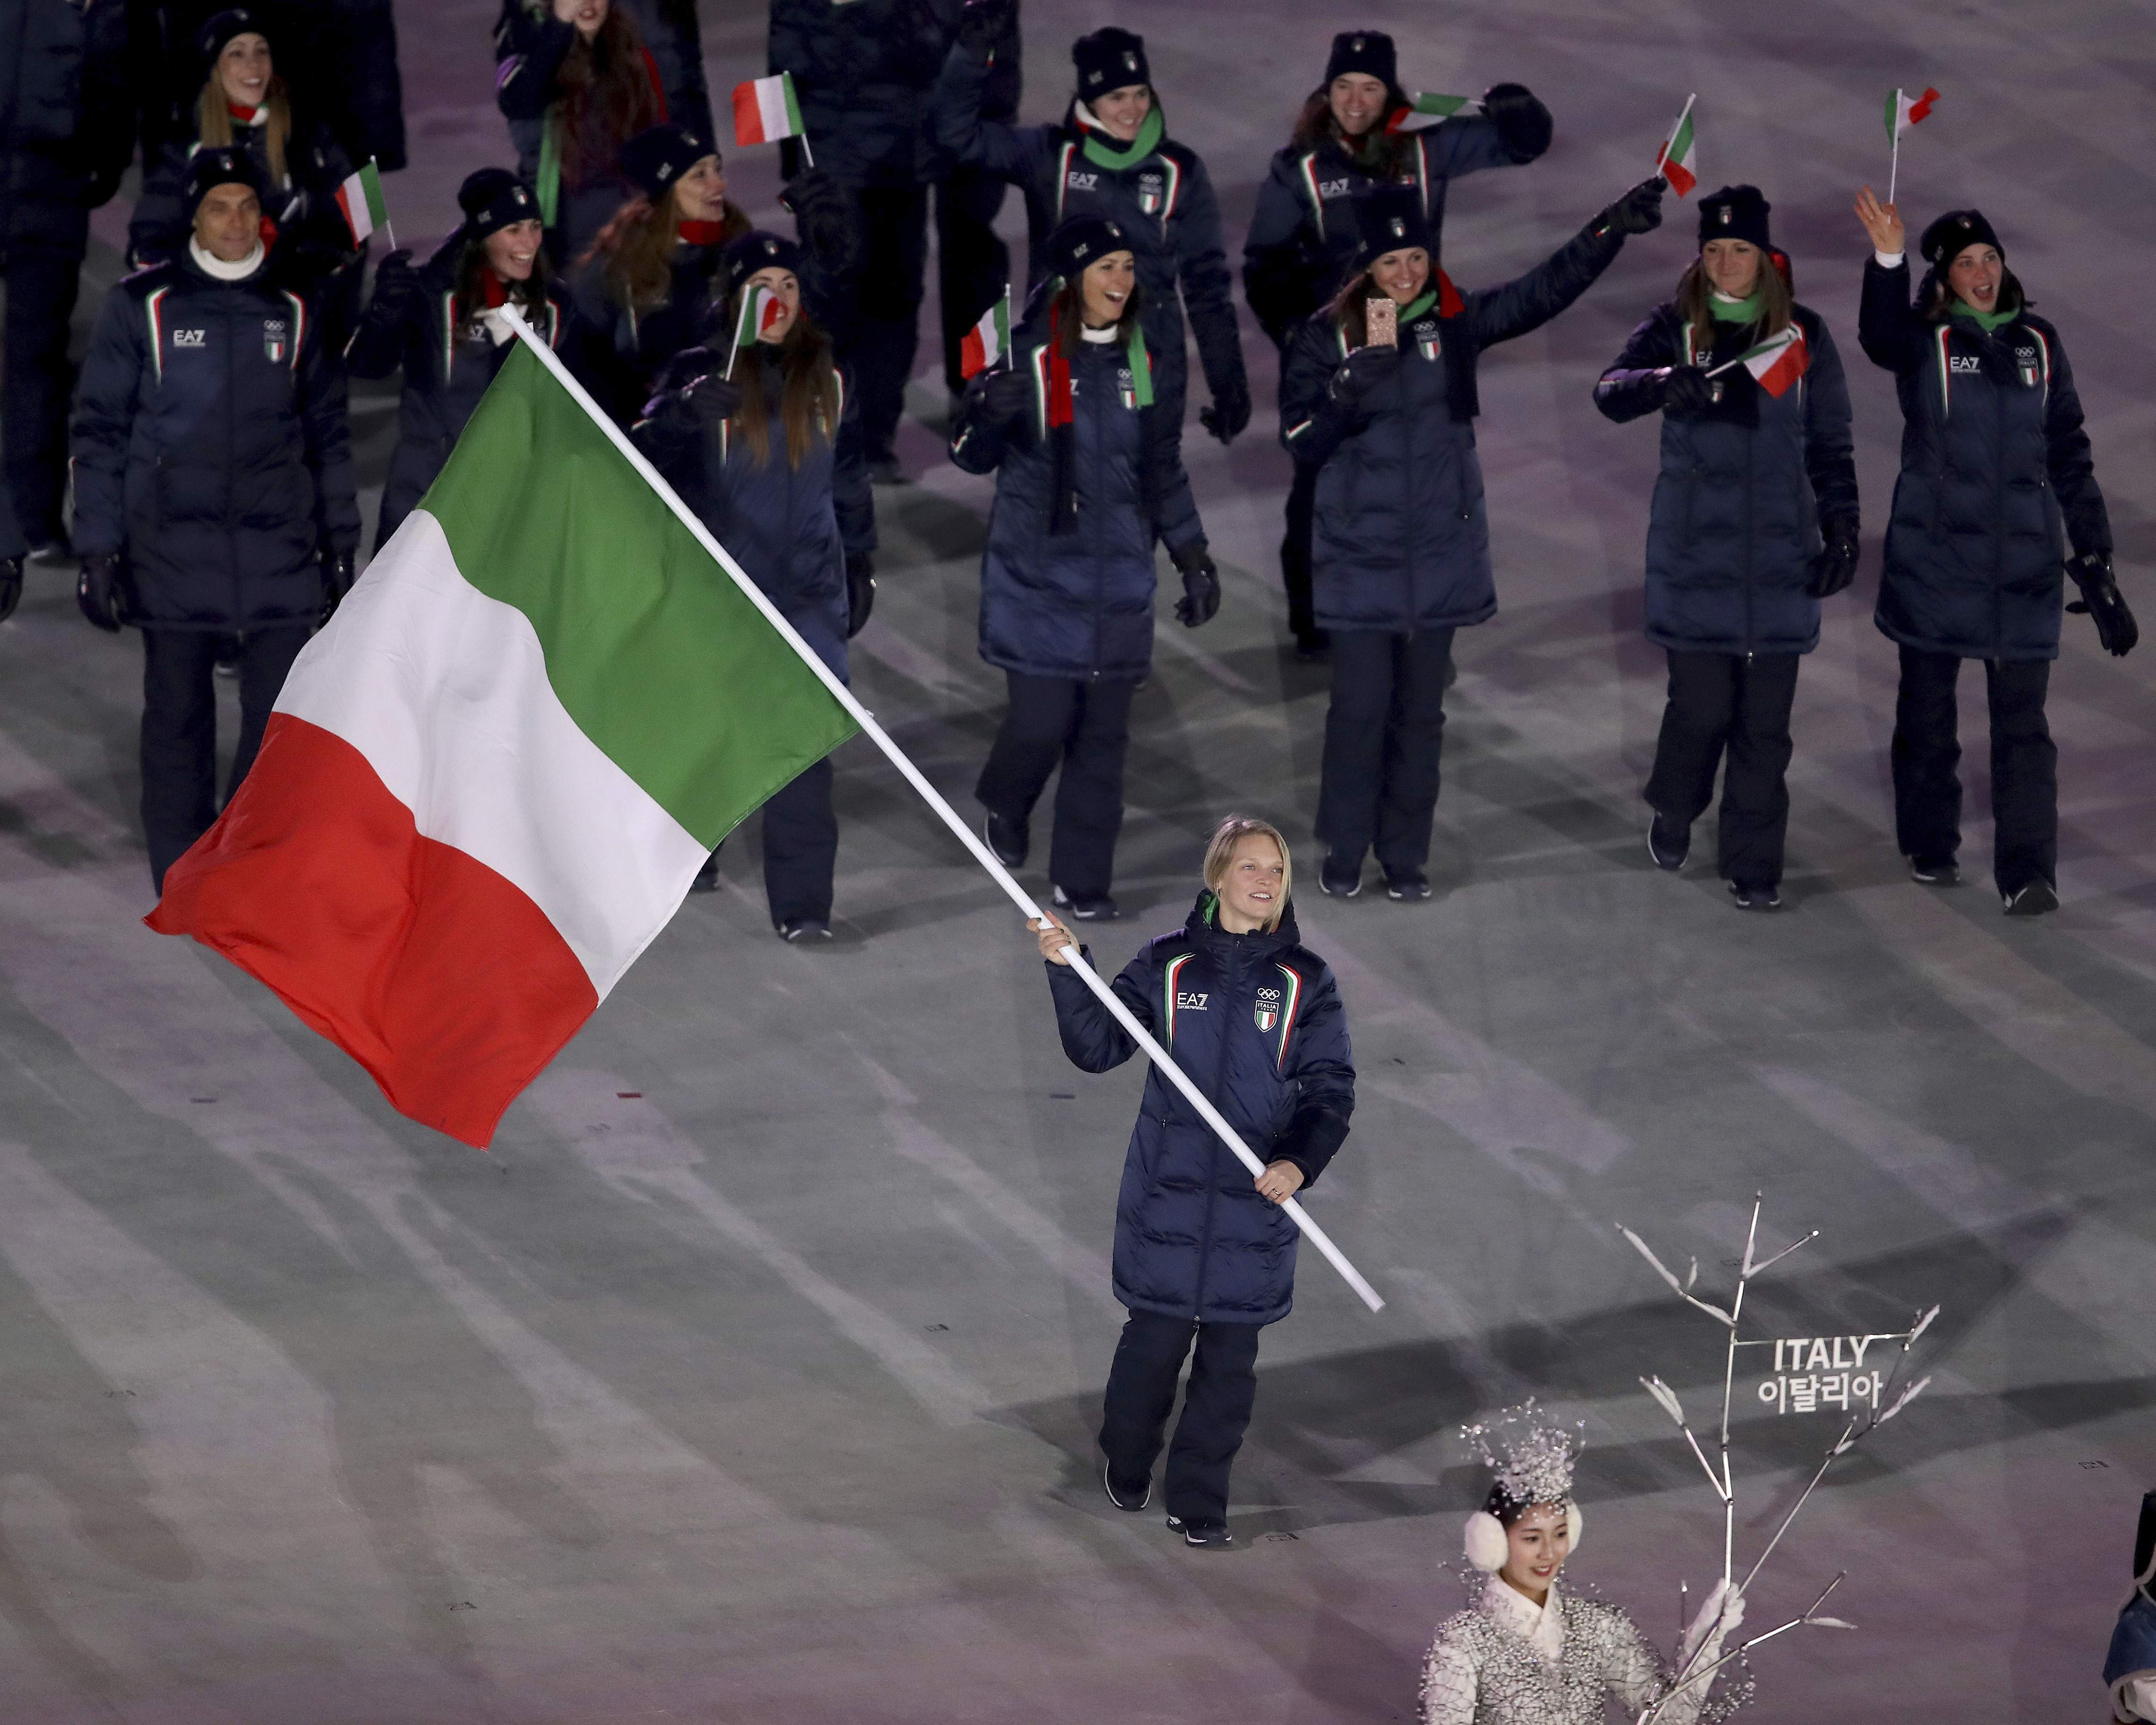 Arianna Fontana carries the flag of Italy during the opening ceremony of the 2018 Winter Olympics in Pyeongchang, South Korea, Friday, Feb. 9, 2018. (Sean Haffey/Pool Photo via AP)